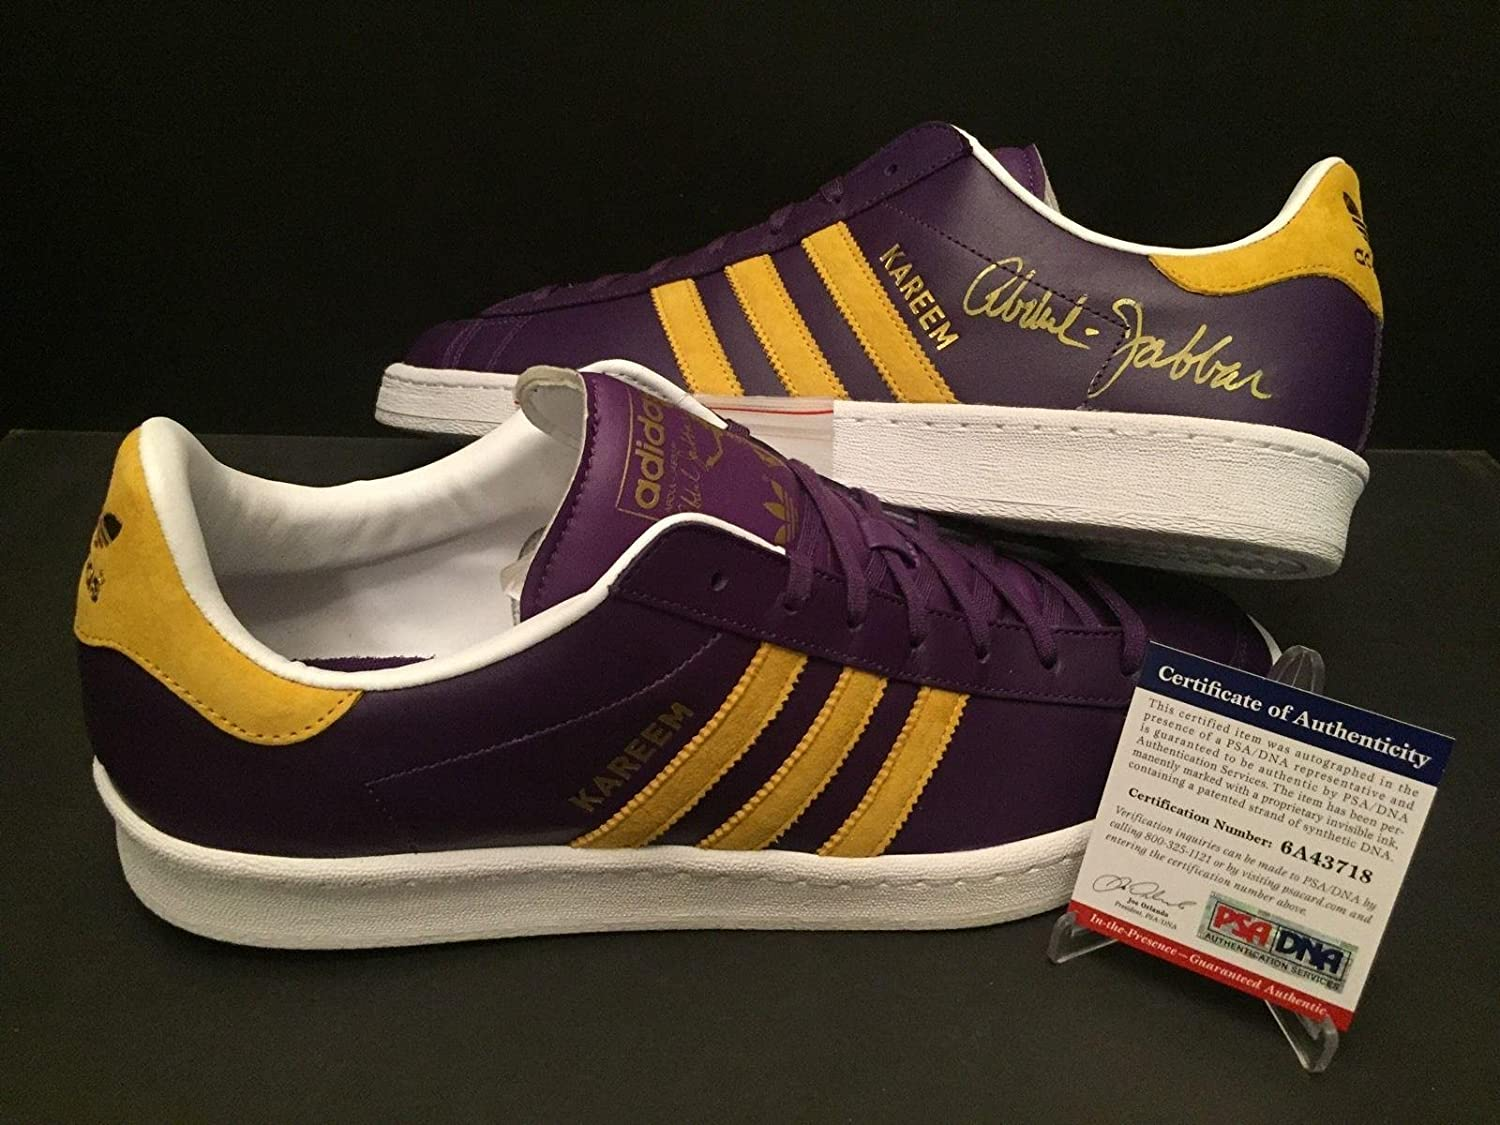 Kareem Abdul-Jabbar Signed Autographed Adidas Shoes Los Angeles Lakers  PSA/DNA - Autographed NBA Sneakers at Amazon's Sports Collectibles Store